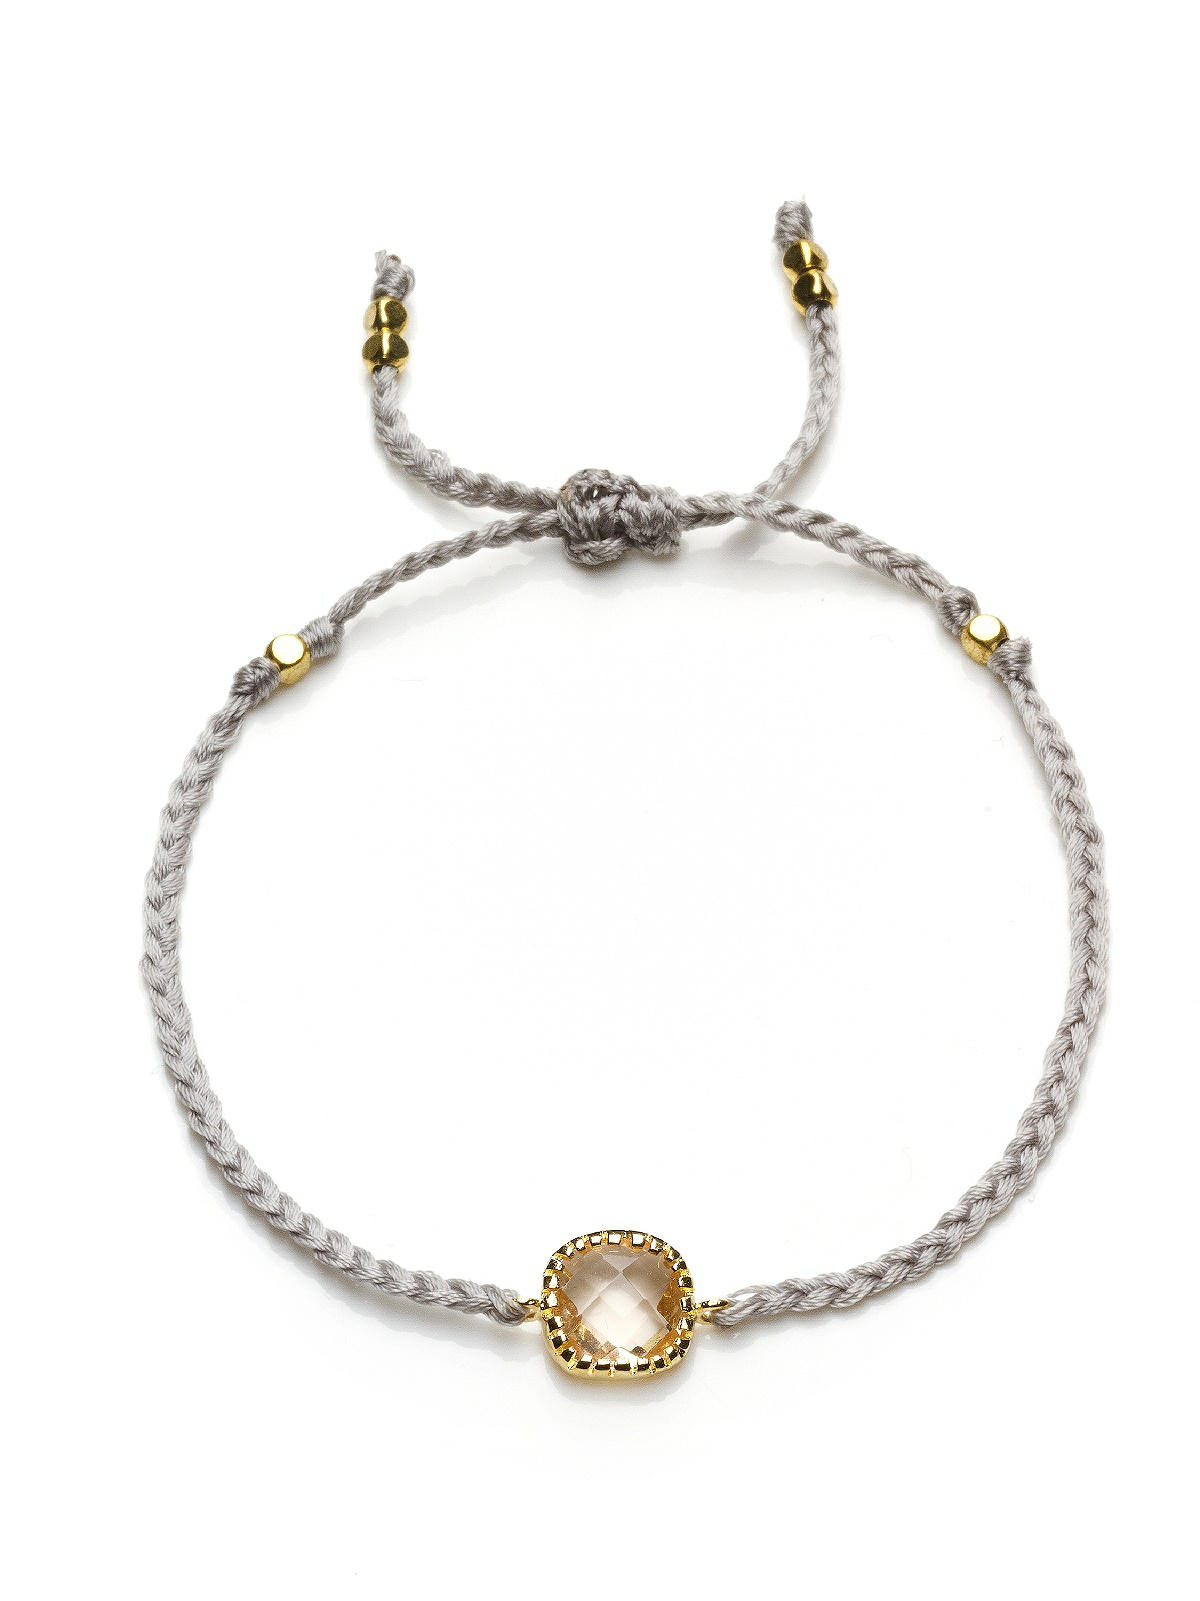 Friendship Bracelet with Stone Detail: The Dessy Group